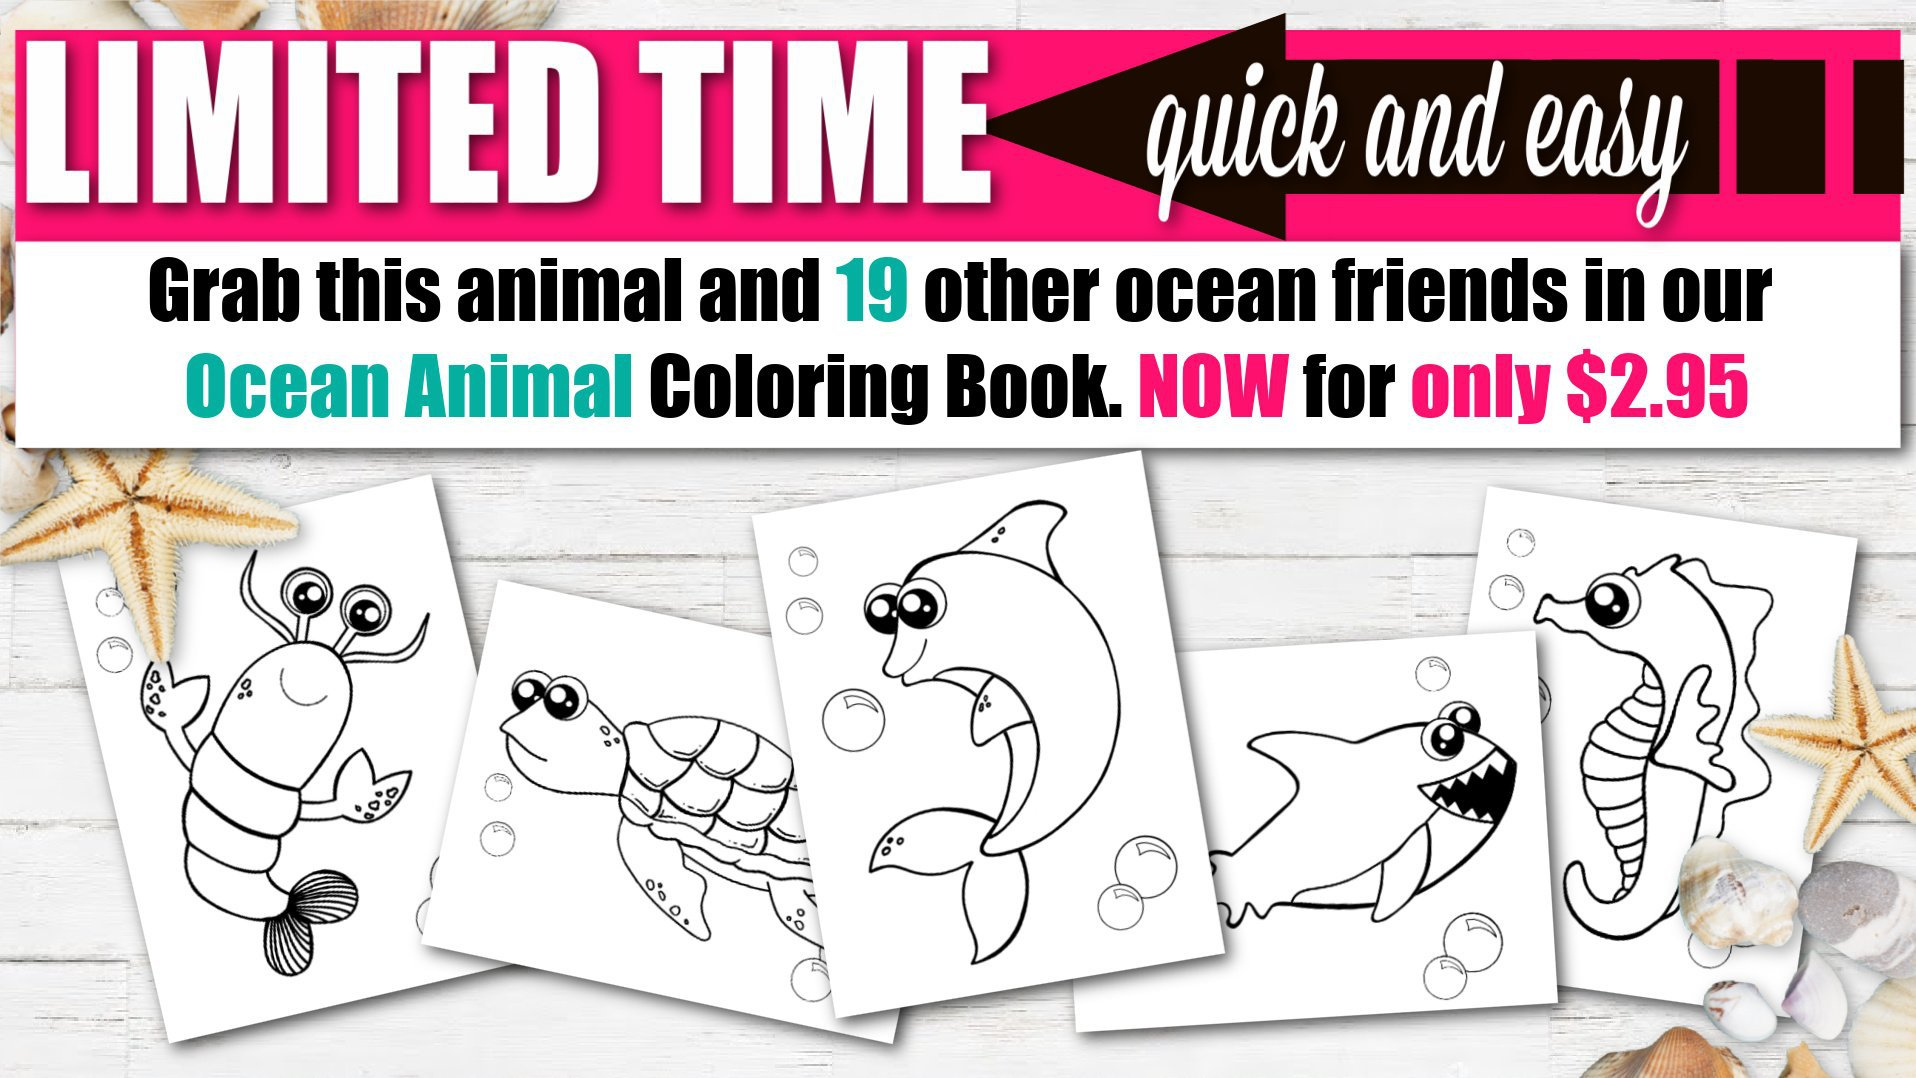 Printable Ocean Animal Coloring Book for kids, preschoolers and toddlers